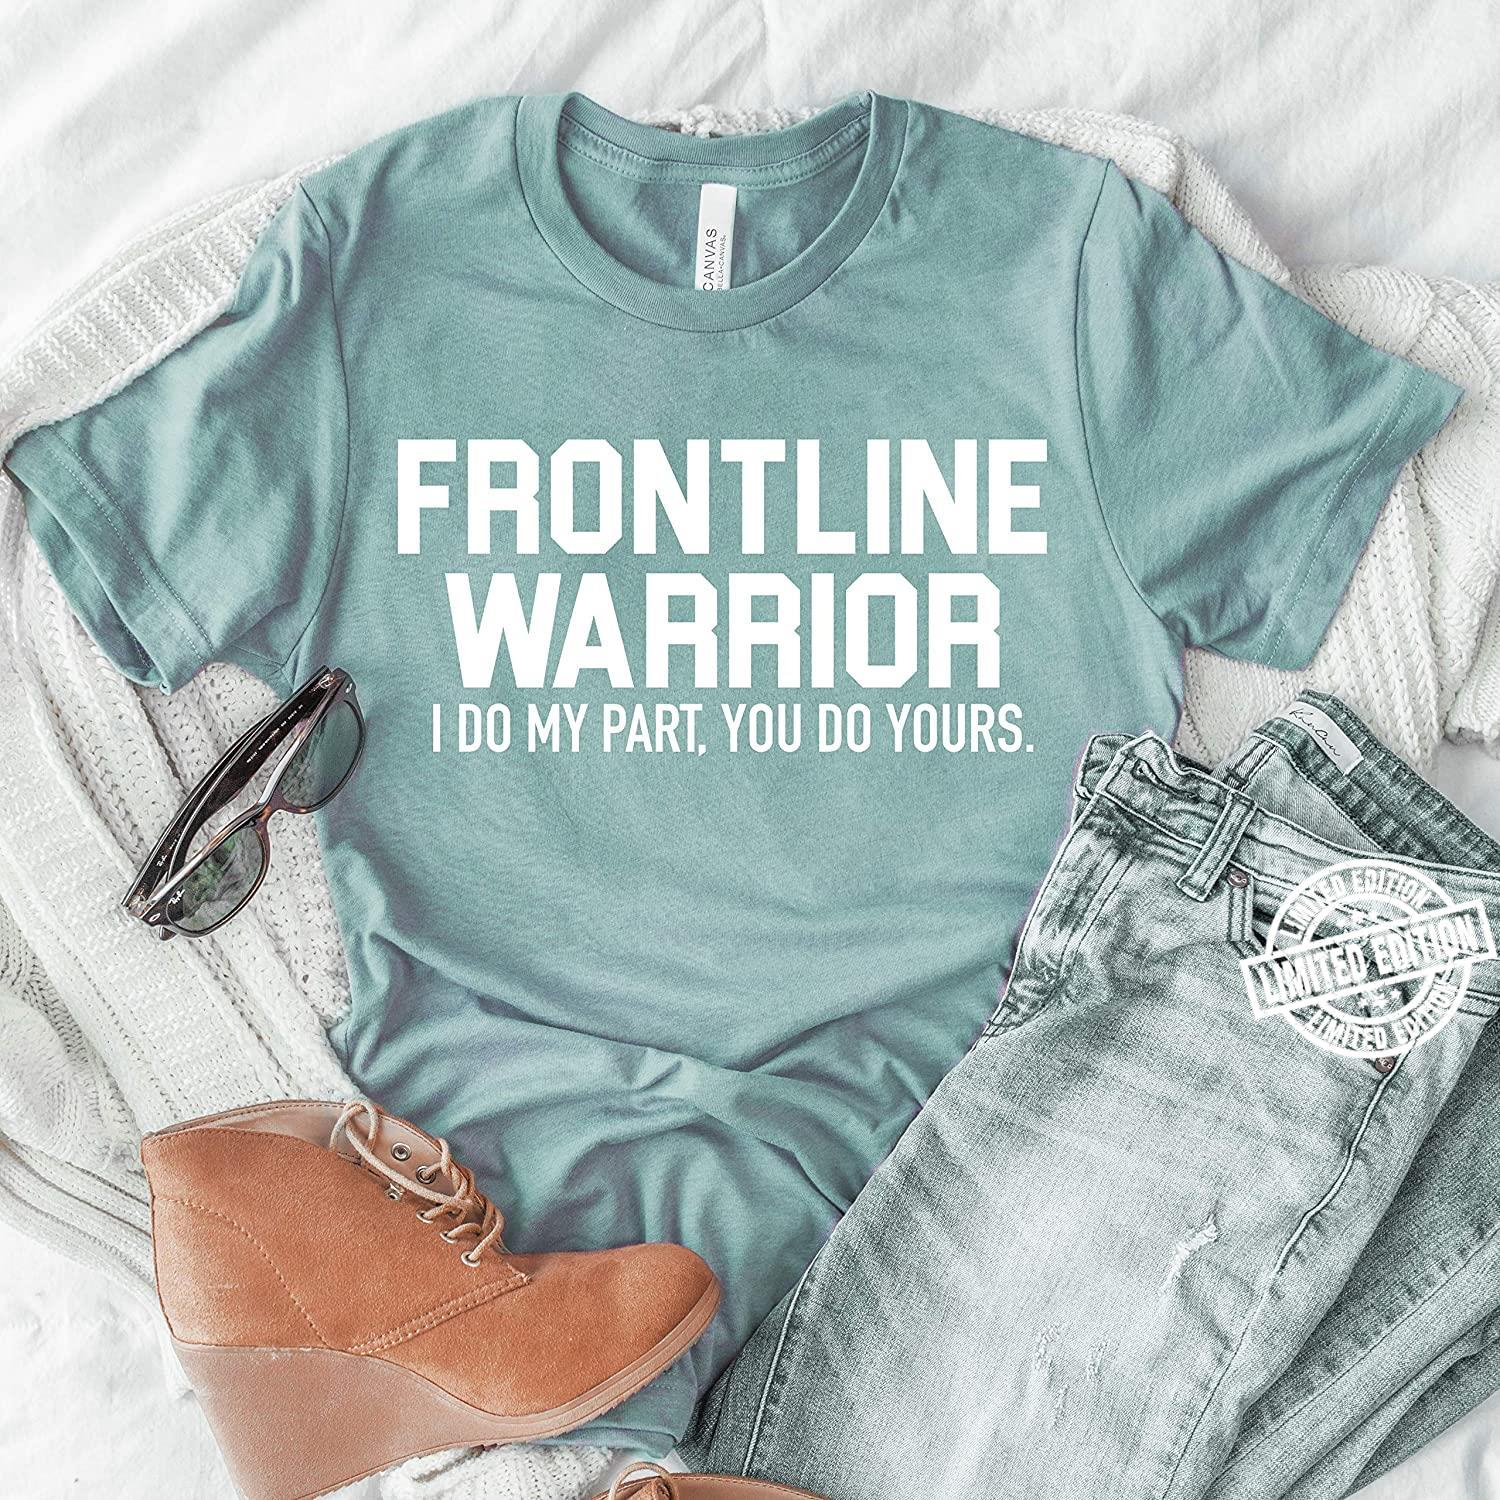 Frontline warrior I do my part you do yours shirt